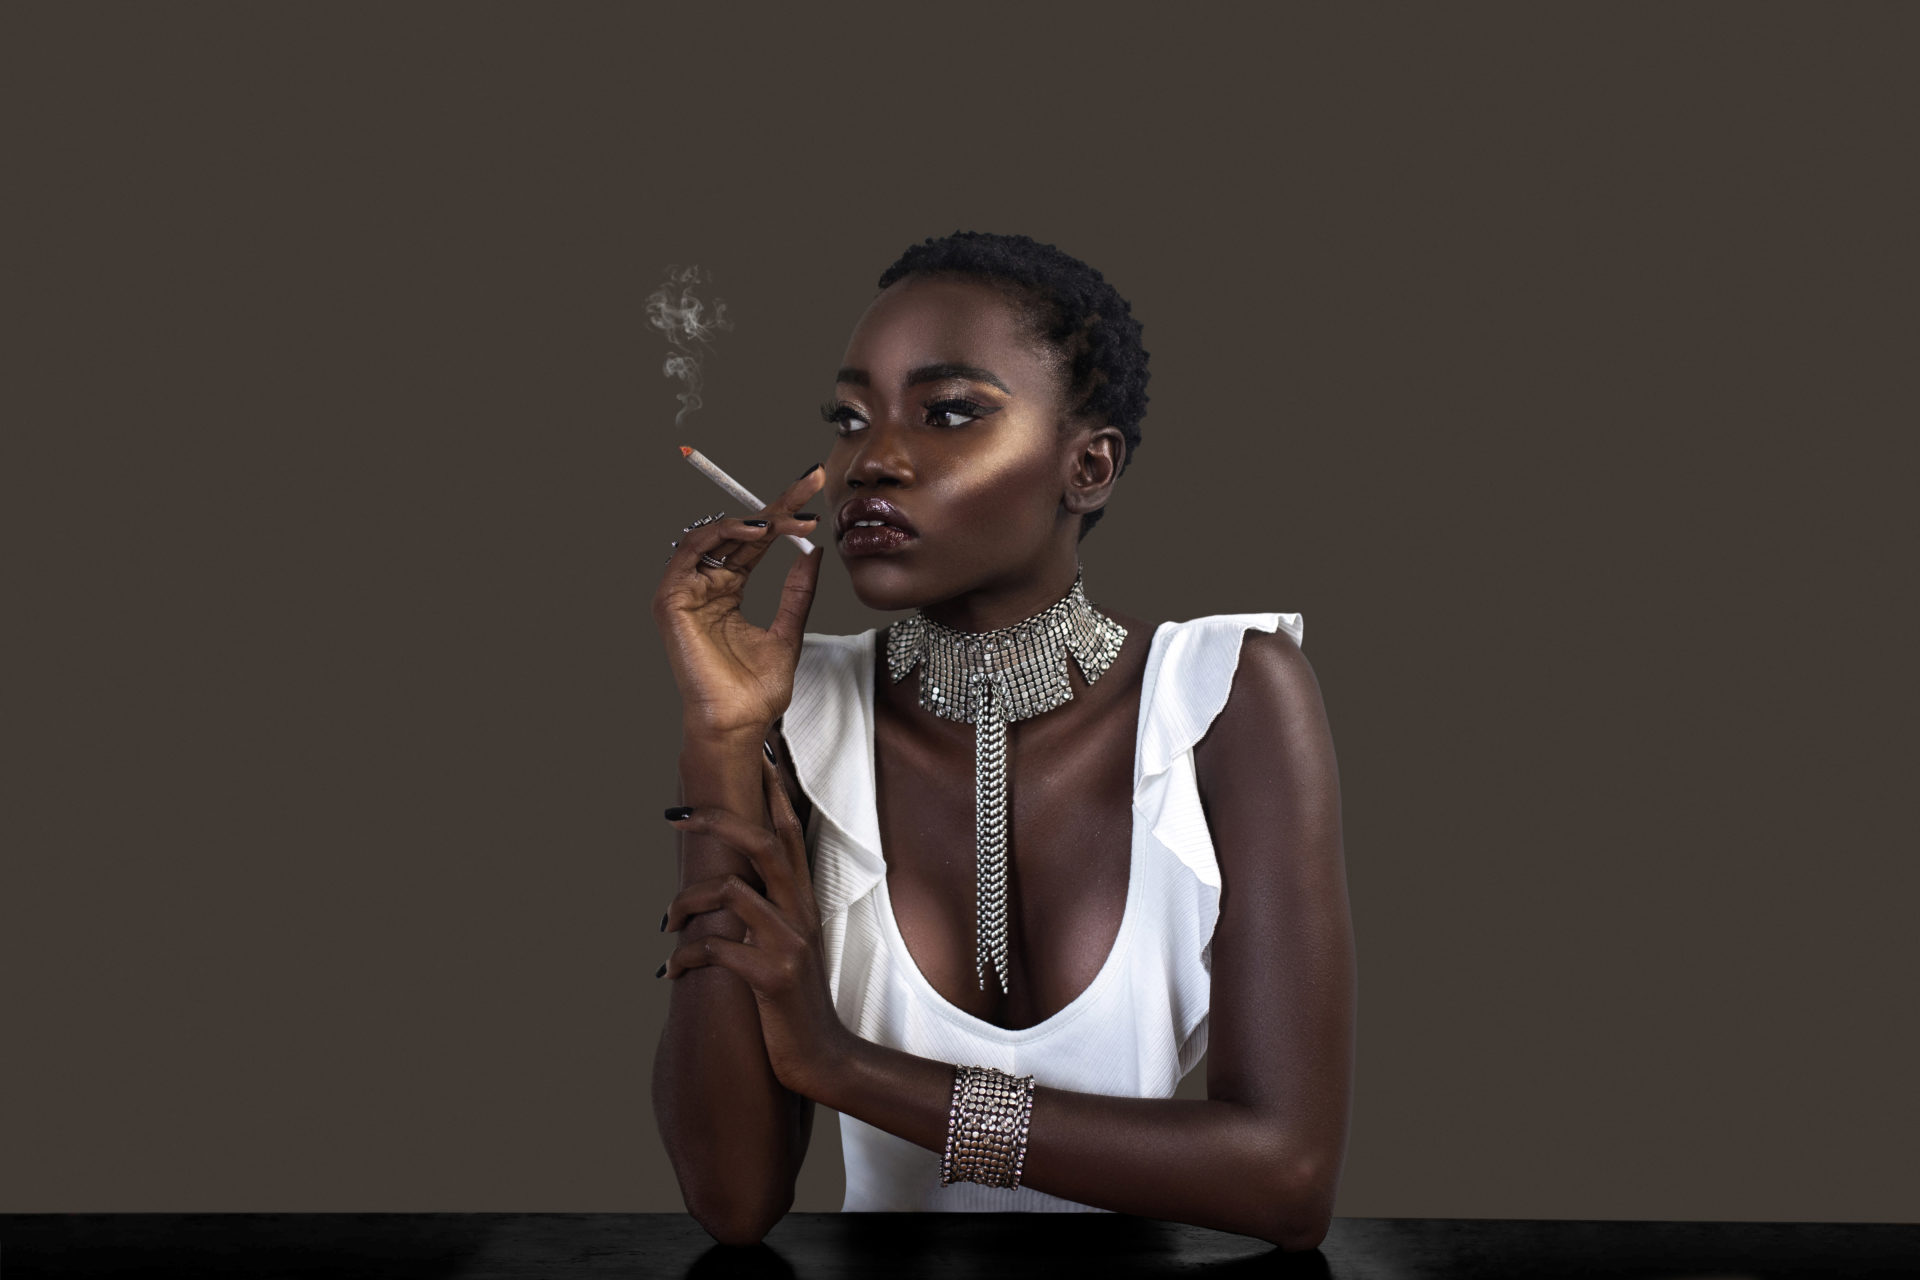 Joint Smoking Black Lady in Silver Jewelry